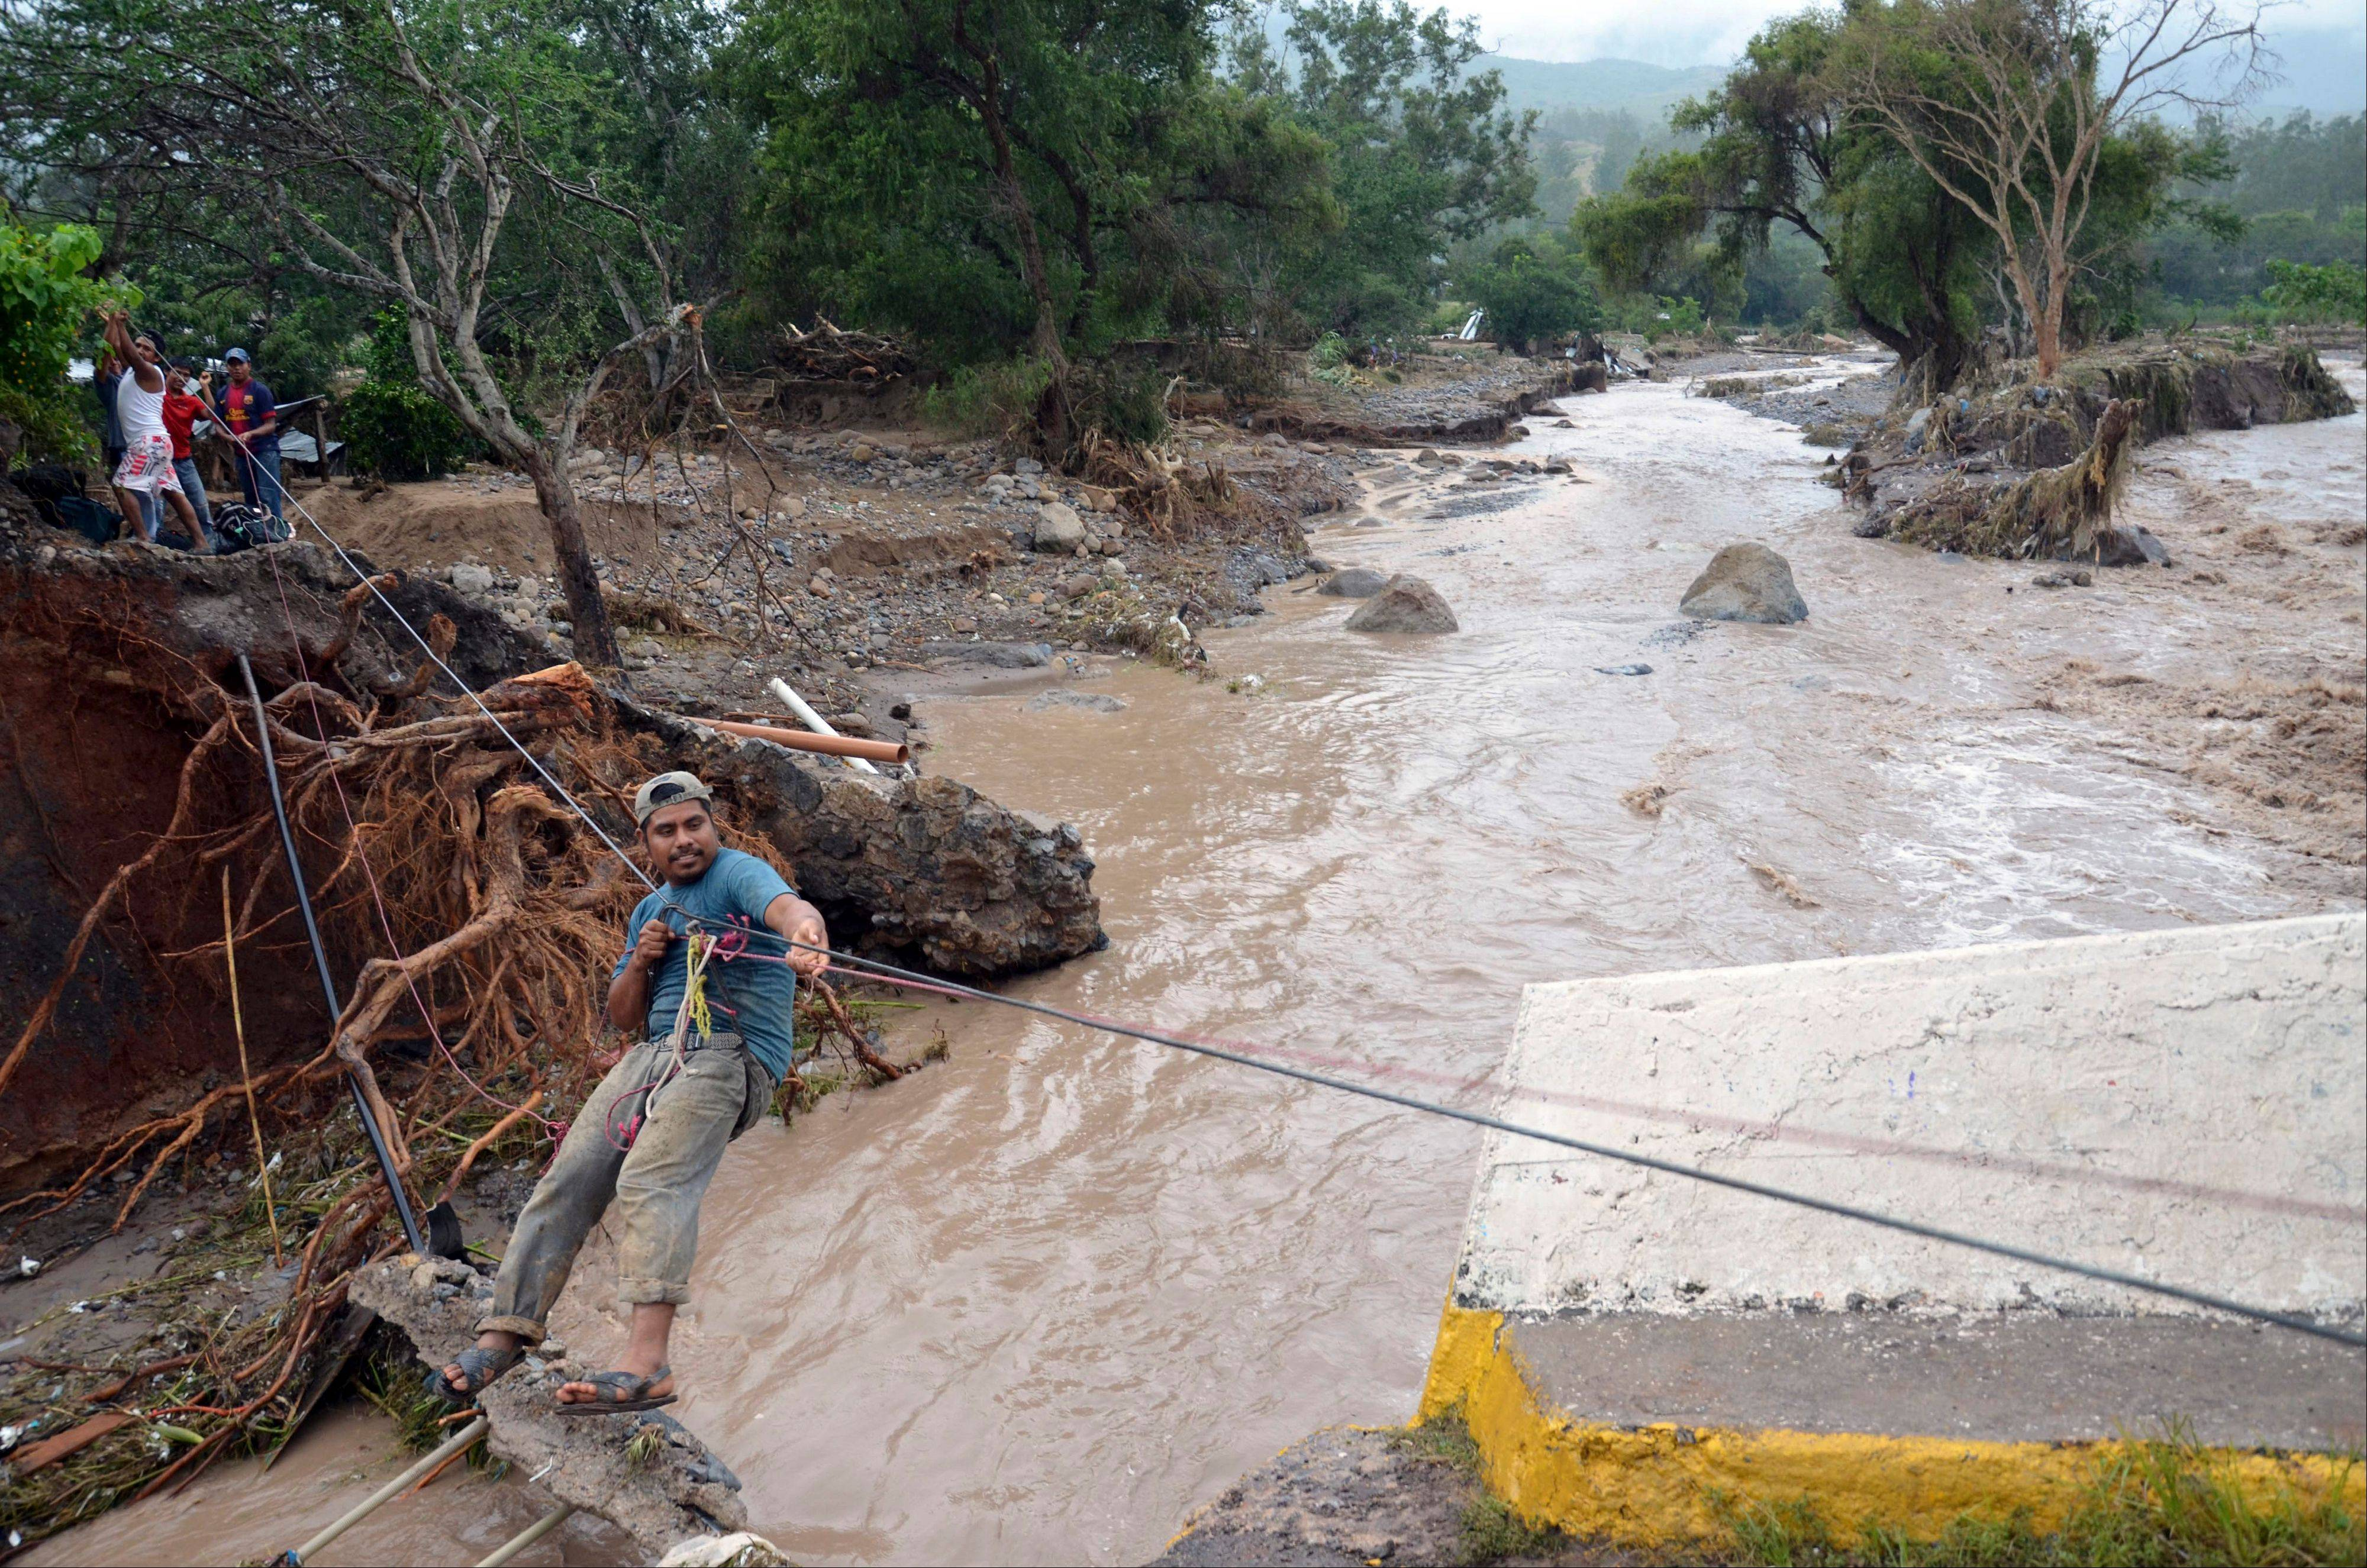 A man uses a makeshift zip line to cross a river after a bridge collapsed under the force of the rains caused by Tropical Storm Manuel near the town of Petaquillas, Mexico, Wednesday, Sept. 18, 2013.